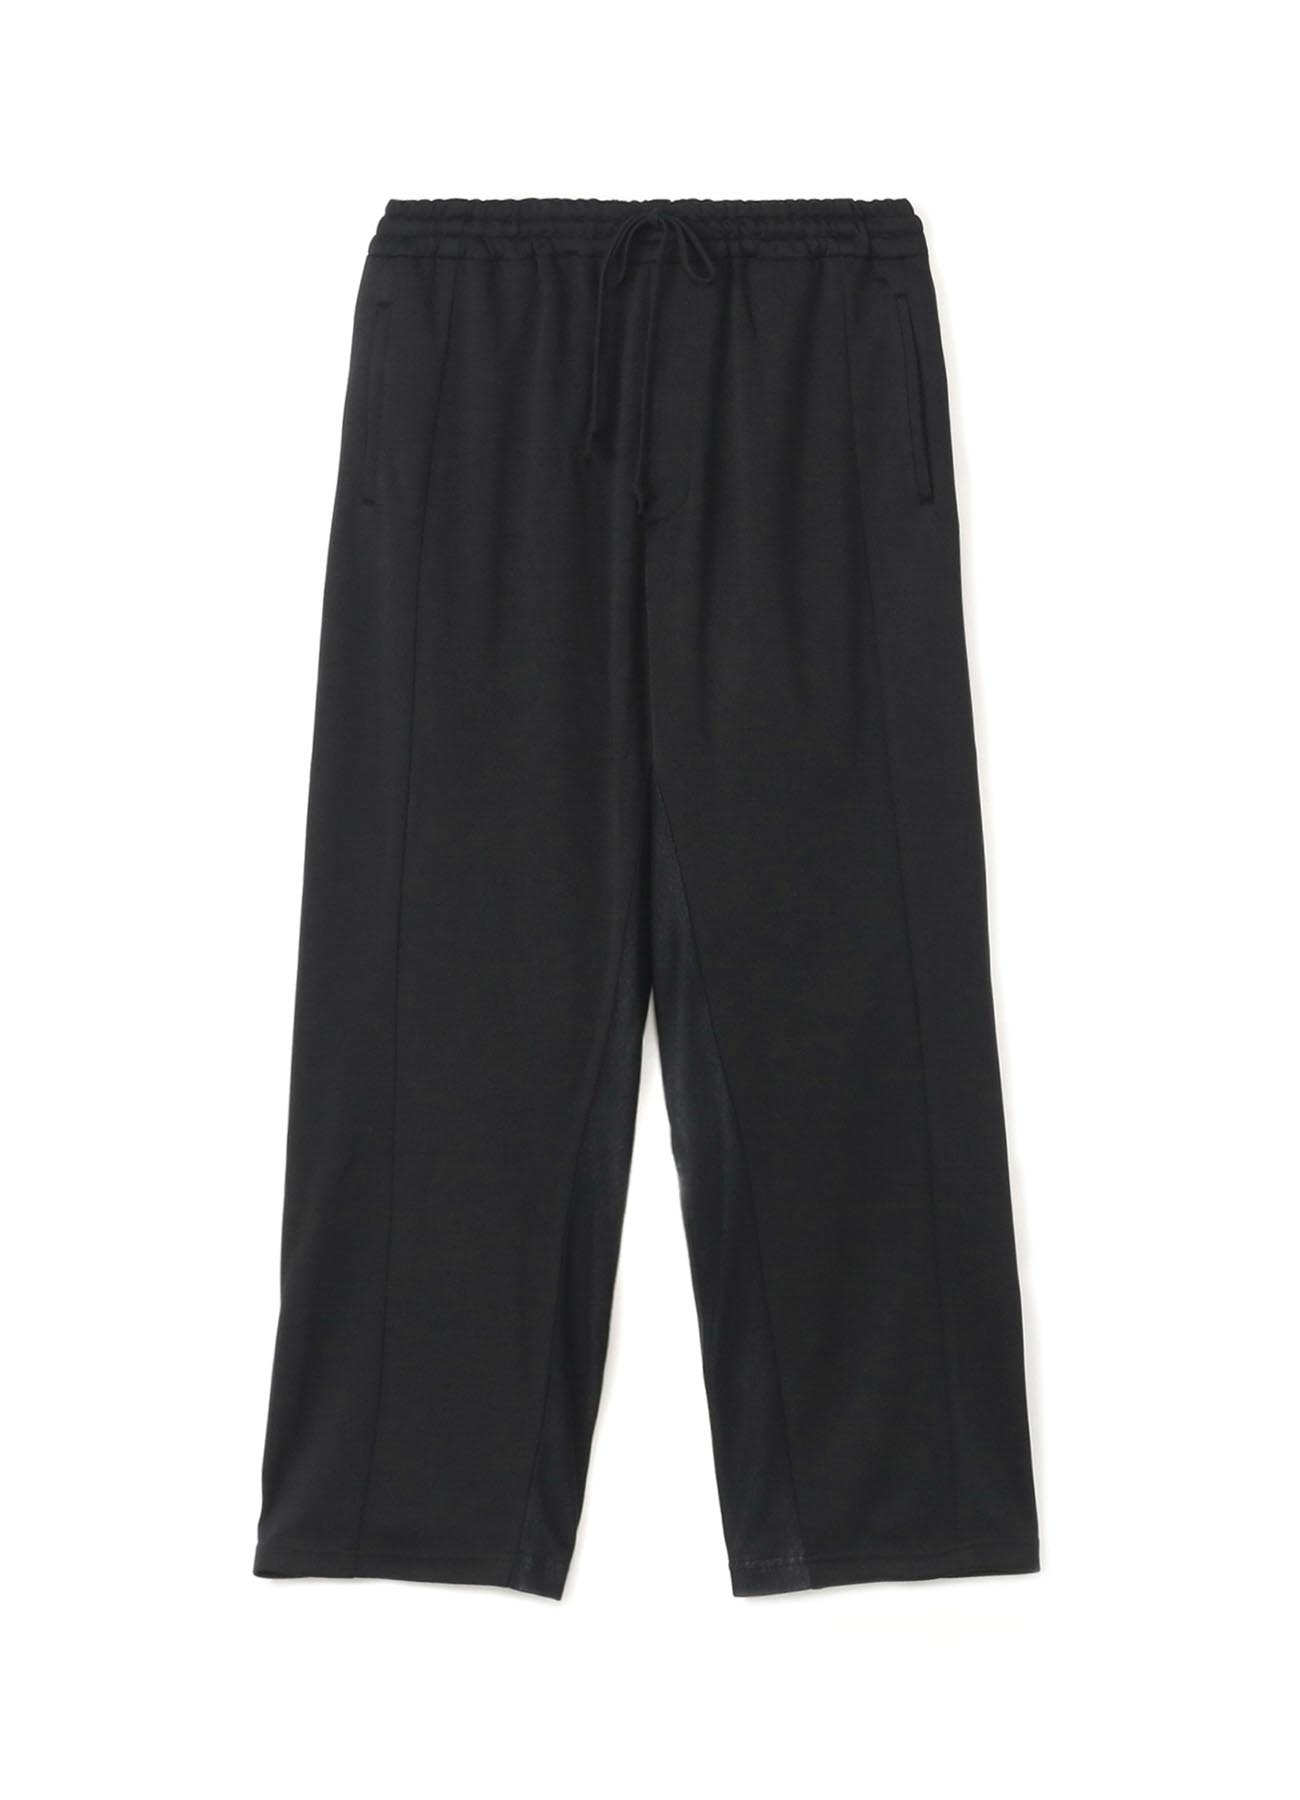 Pe/Smooth Jersey Layered Inside Tulle Track Pants